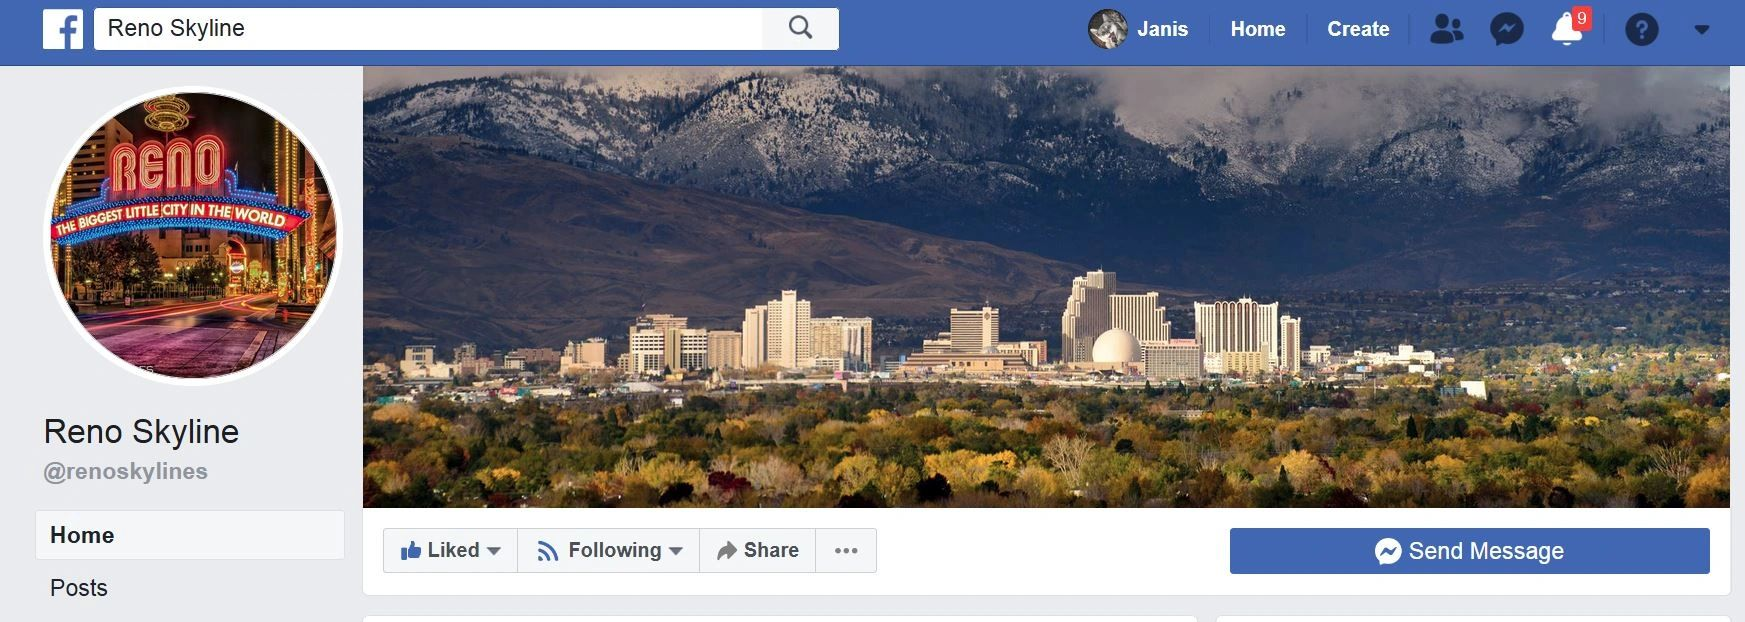 "{""blocks"":[{""key"":""3kh50"",""text"":""The beautiful Reno skyline and Truckee Meadows.  https://www.facebook.com/renoskylines/?ref=bookmarks"",""type"":""unstyled"",""depth"":0,""inlineStyleRanges"":[],""entityRanges"":[],""data"":{}}],""entityMap"":{}}"